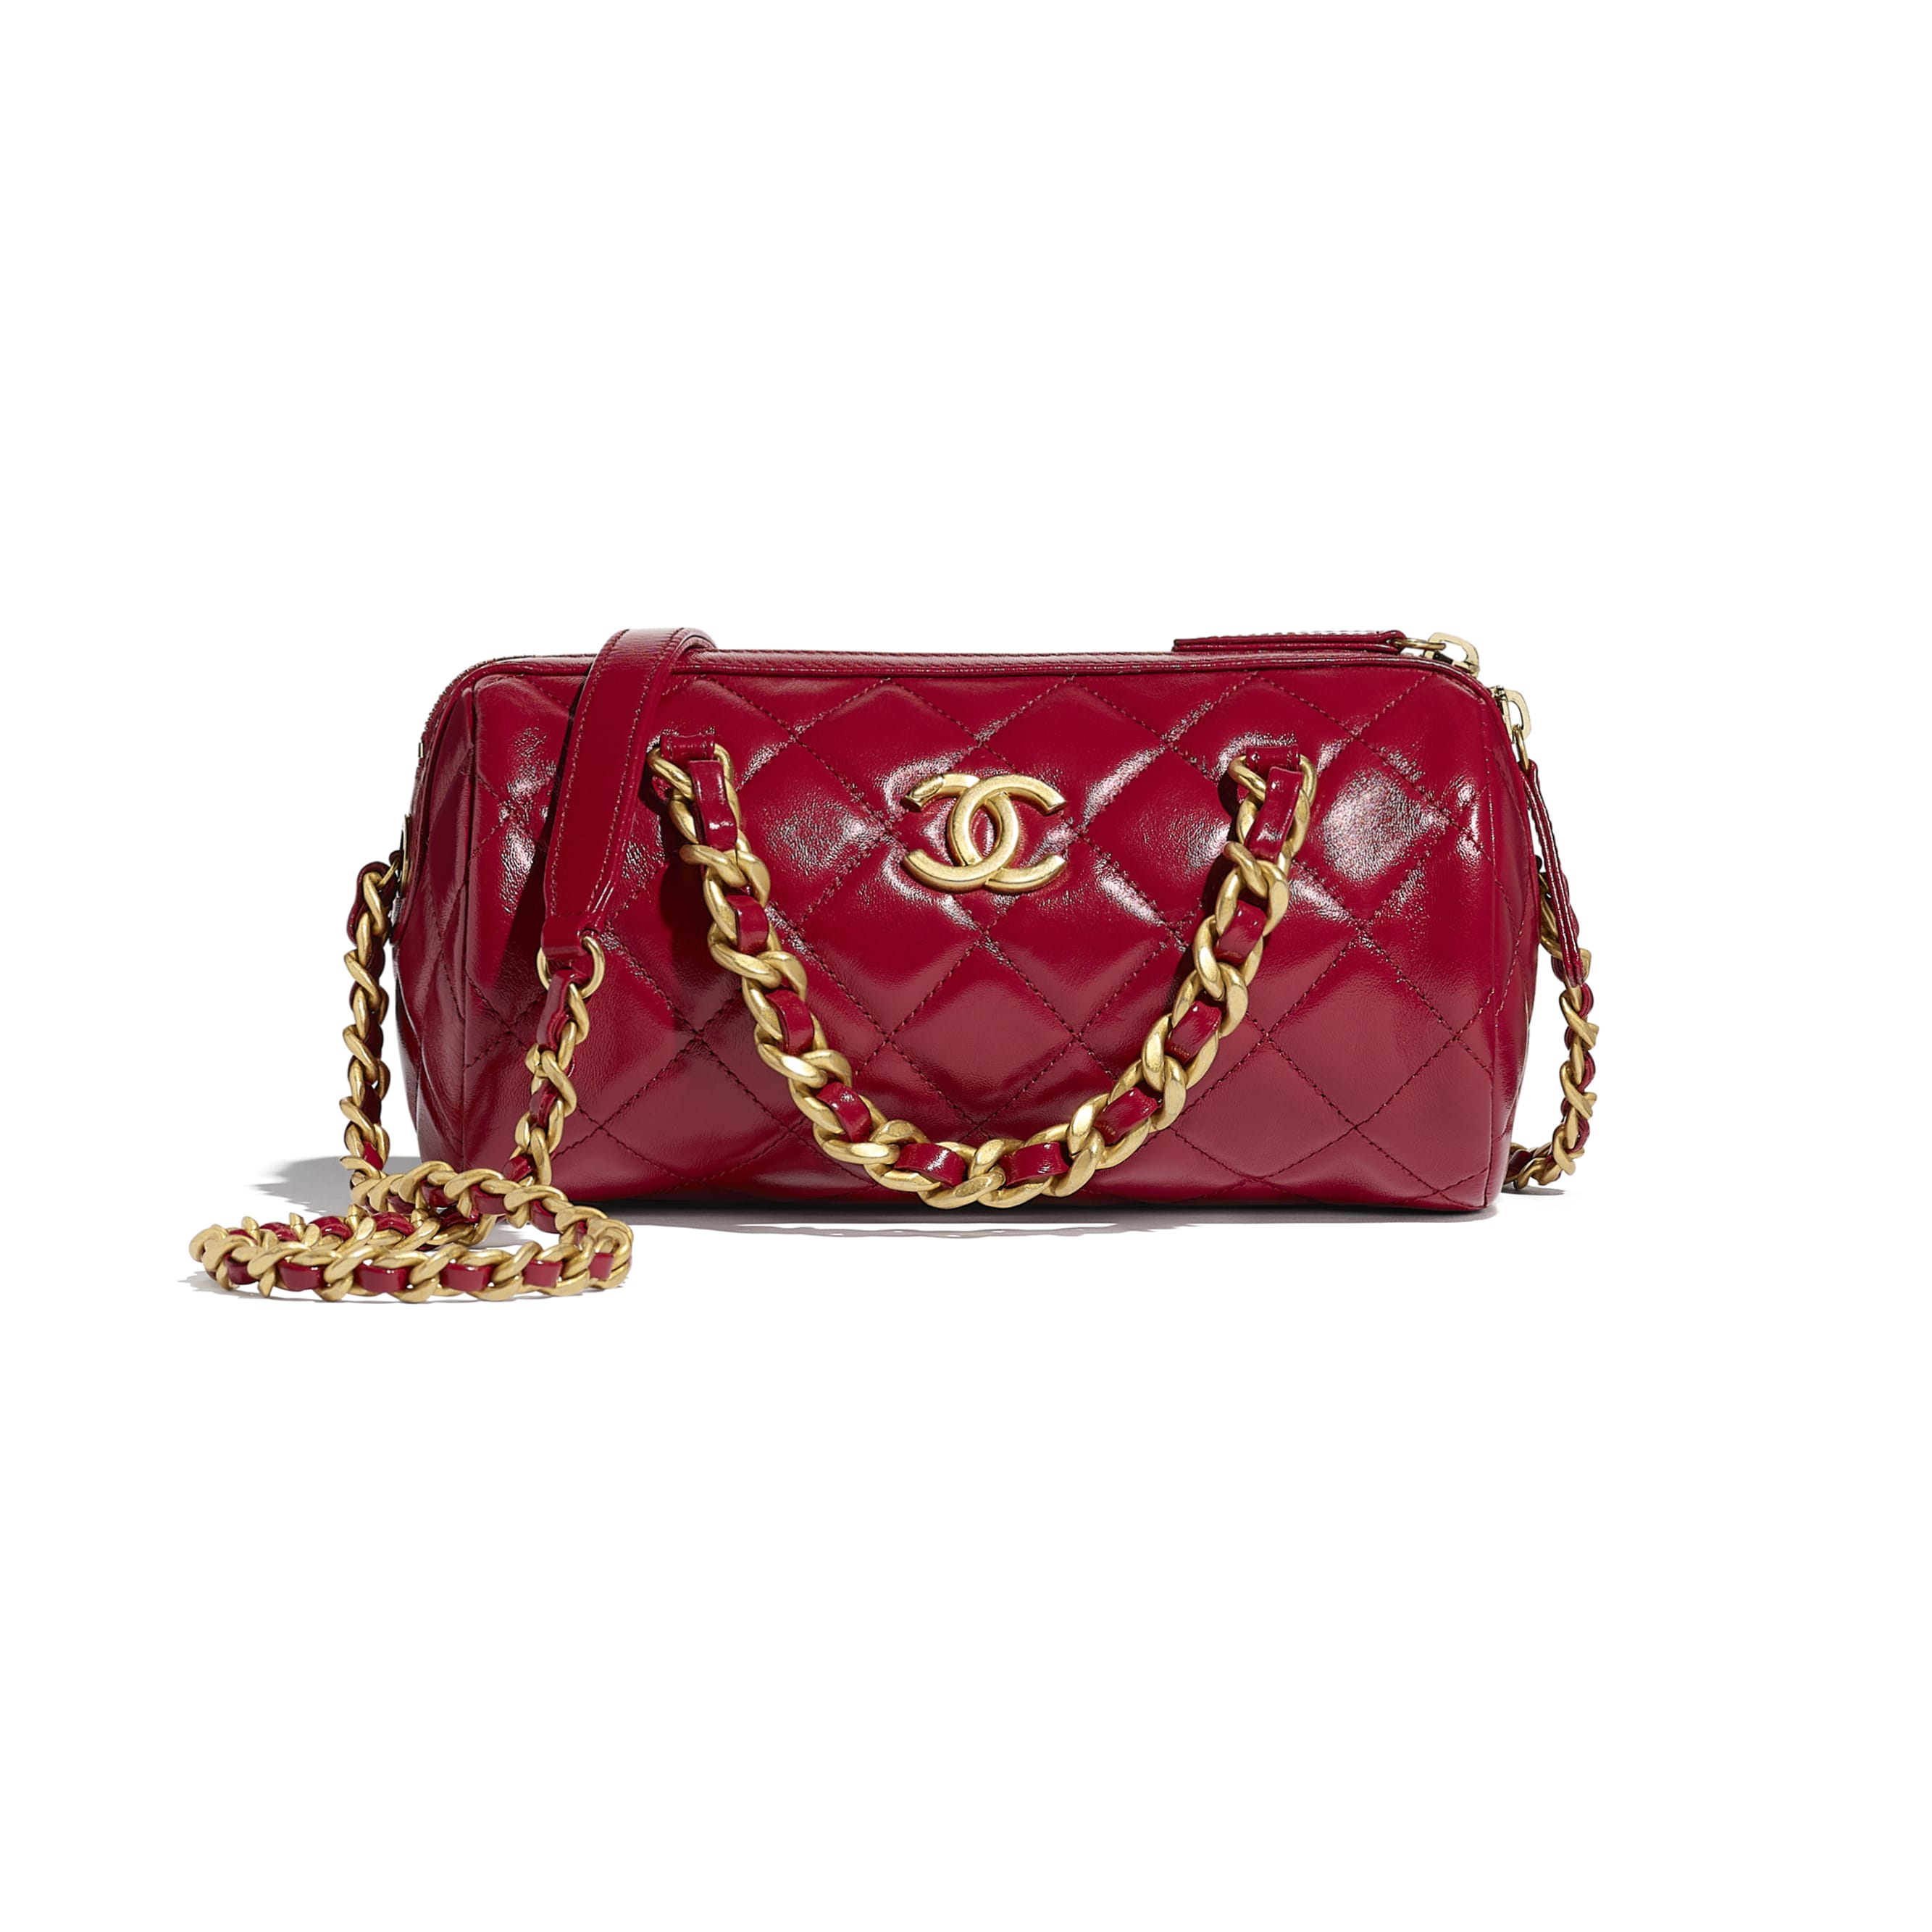 Small Bowling Bag - Pink - Shiny Lambskin & Gold-Tone Metal - CHANEL - Default view - see standard sized version